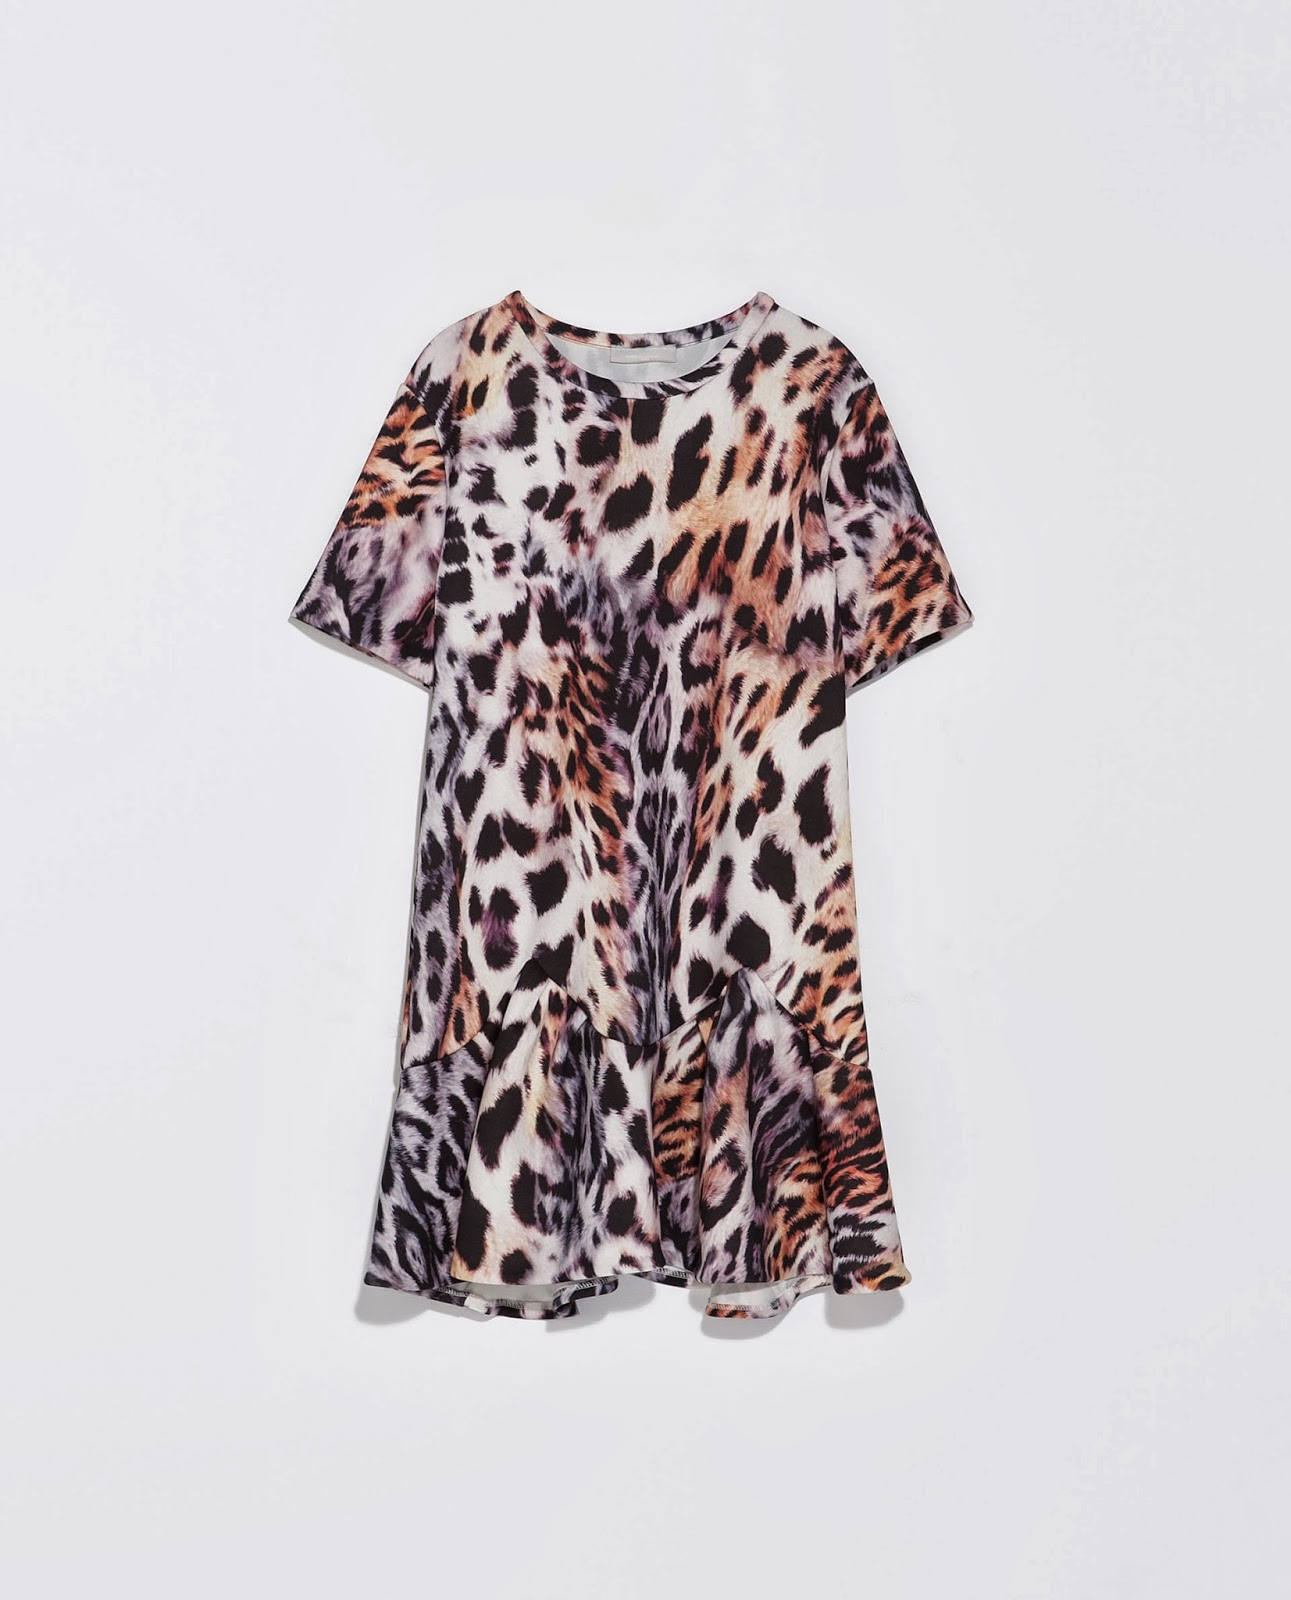 zara leopard dress